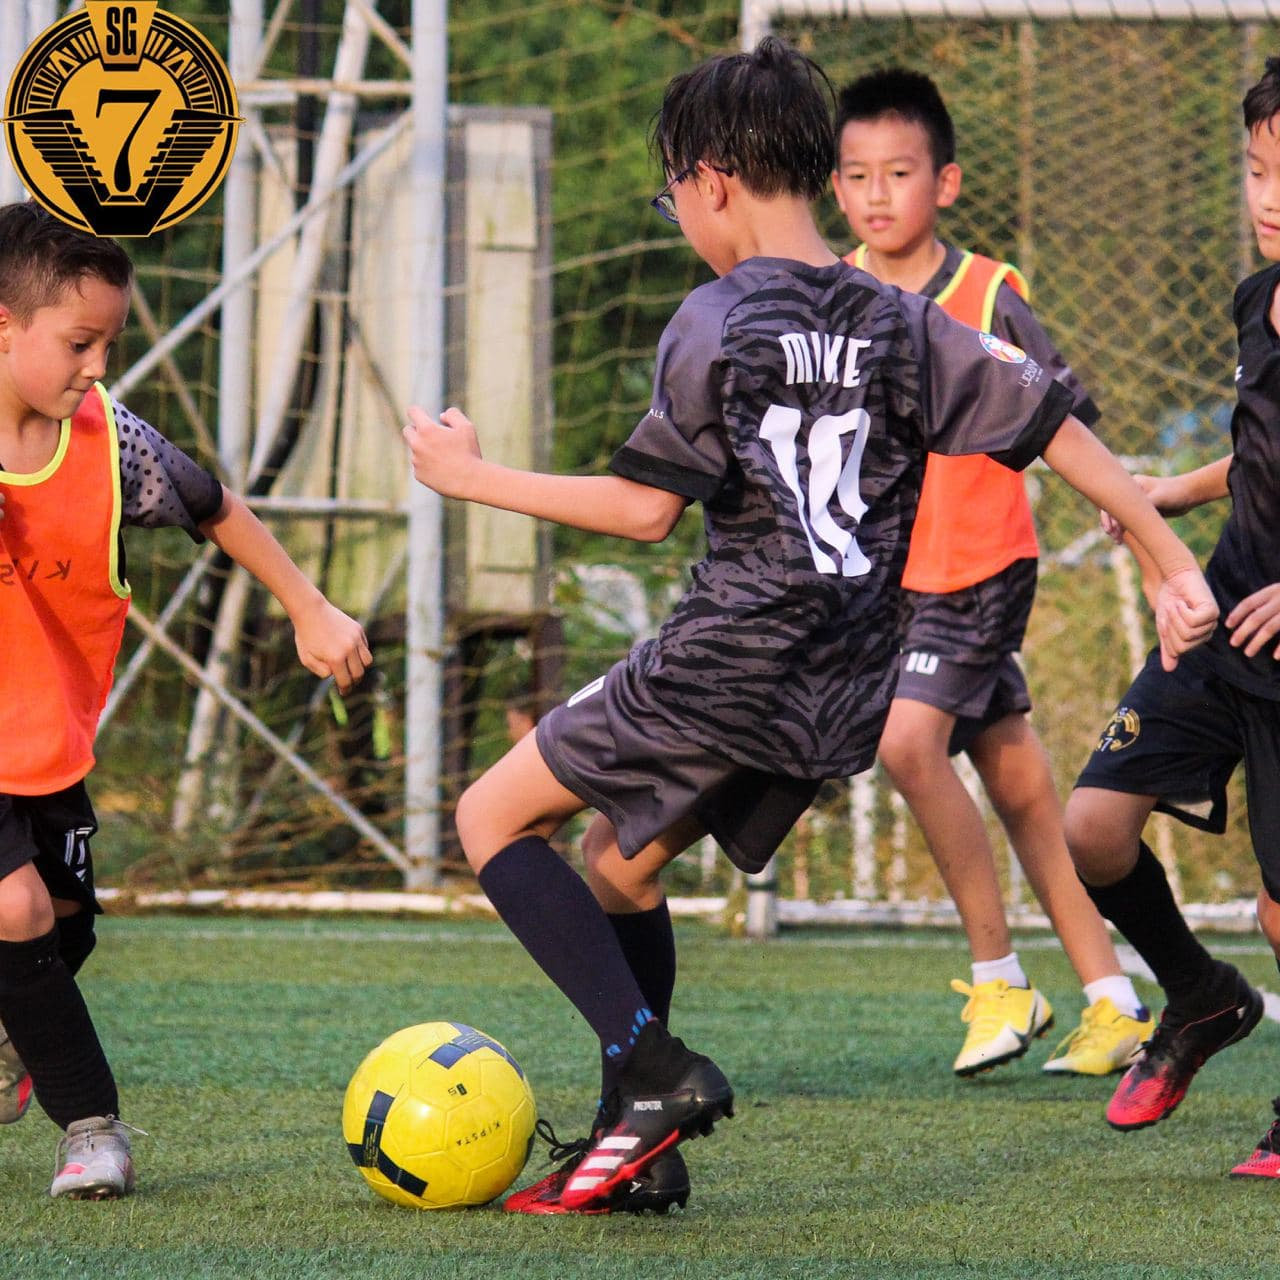 Players Under 12 Years Old